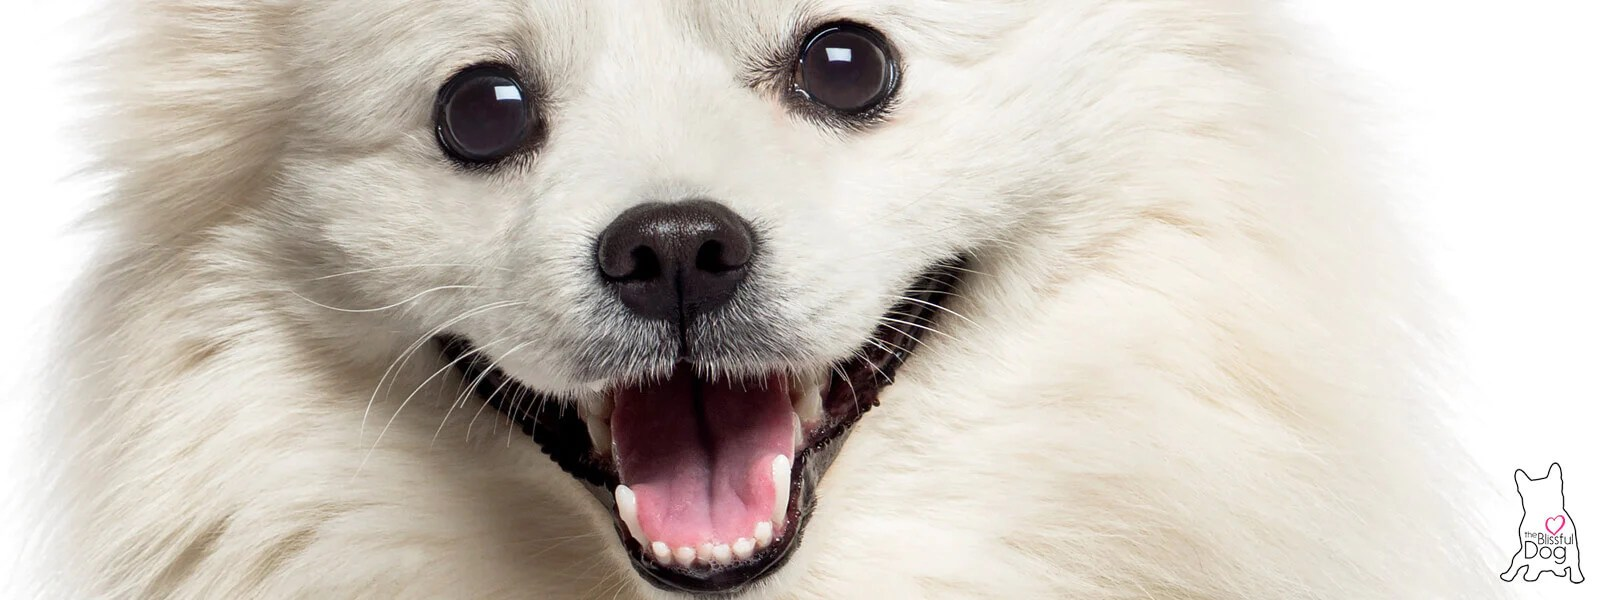 Perfect Your American Eskimo Nose American Eskimo Nose Butter Made Usa Balm Your Dry Nose Dog Dry Nose Cracked Dog Dry Nose Cream Nose All Moisturizing Goodness bark post Dog Dry Nose